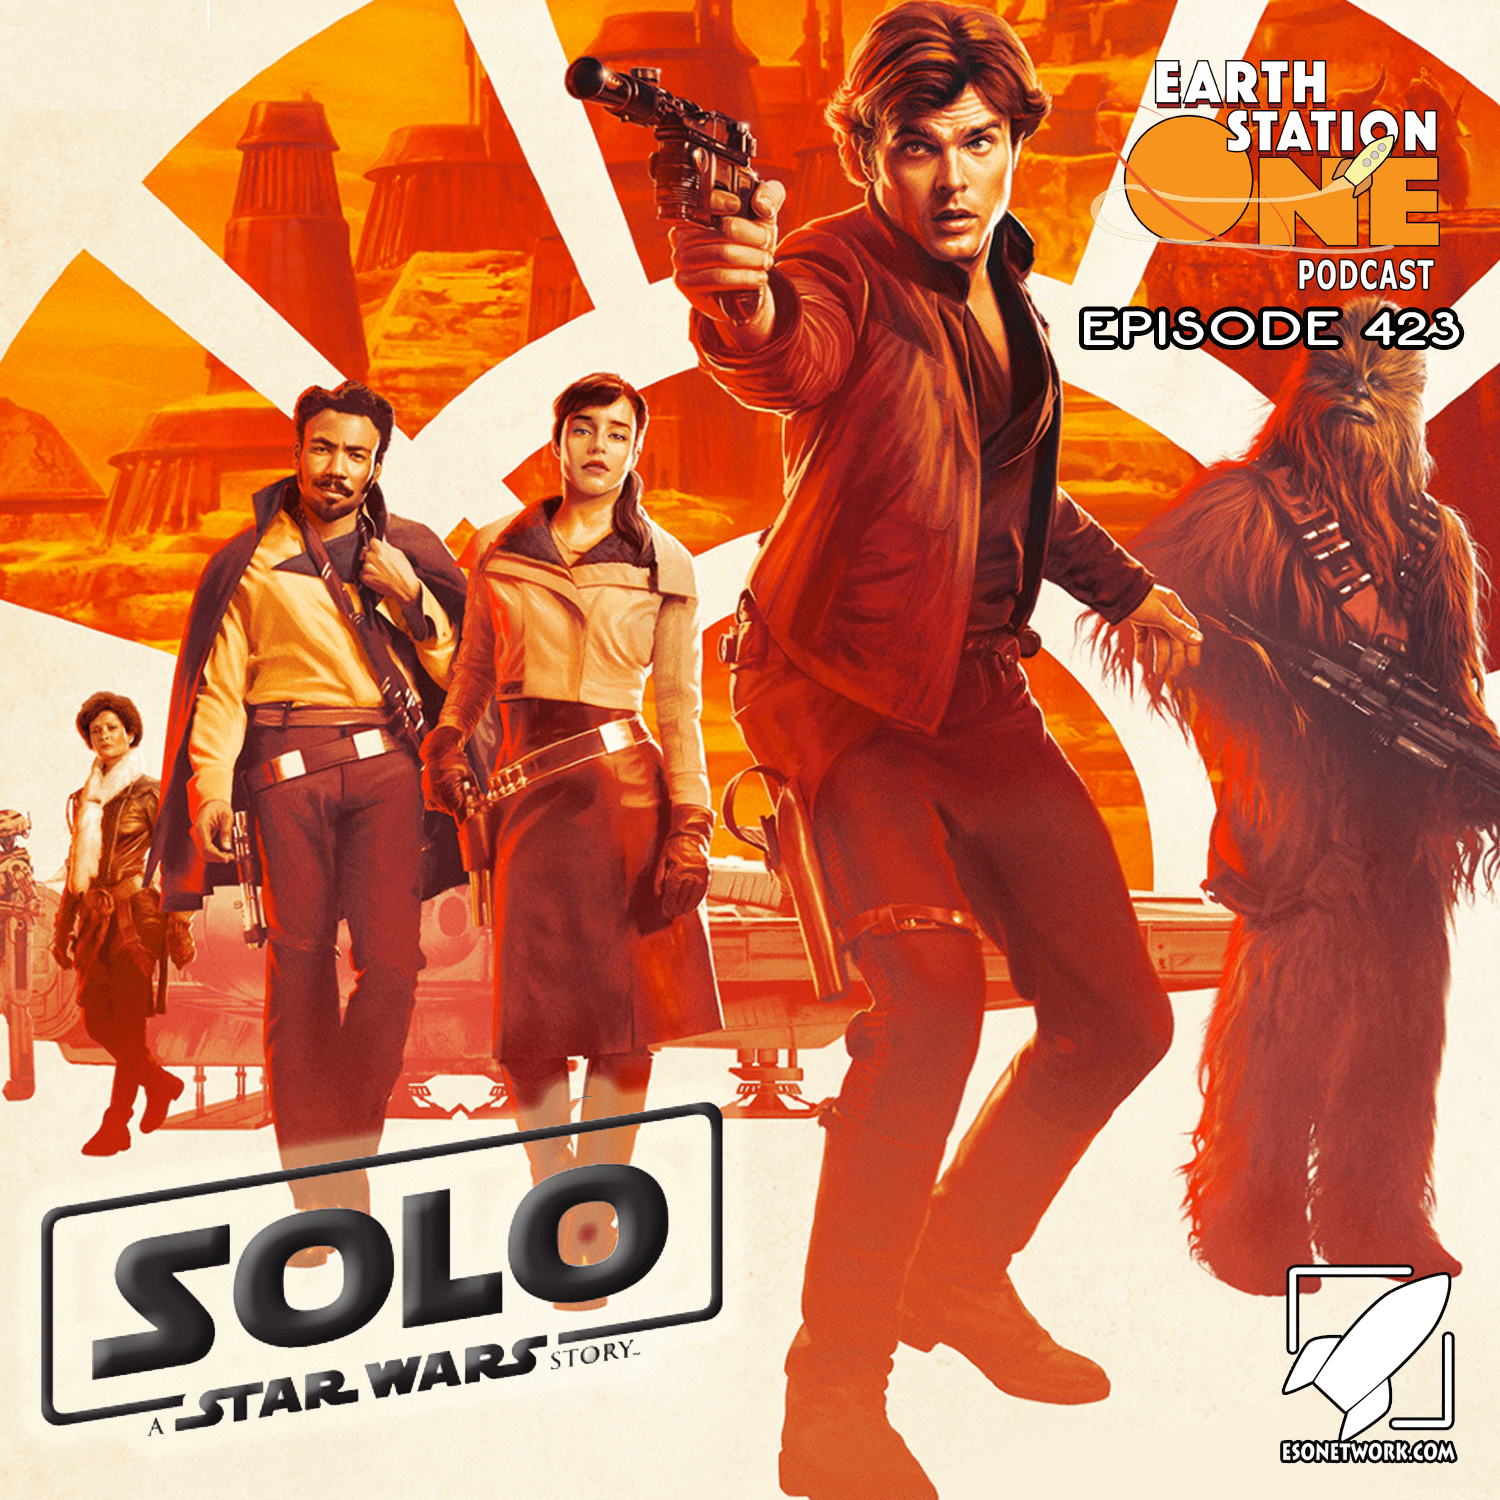 Earth Station One Podcast Ep 423 - Solo A Star Wars Story